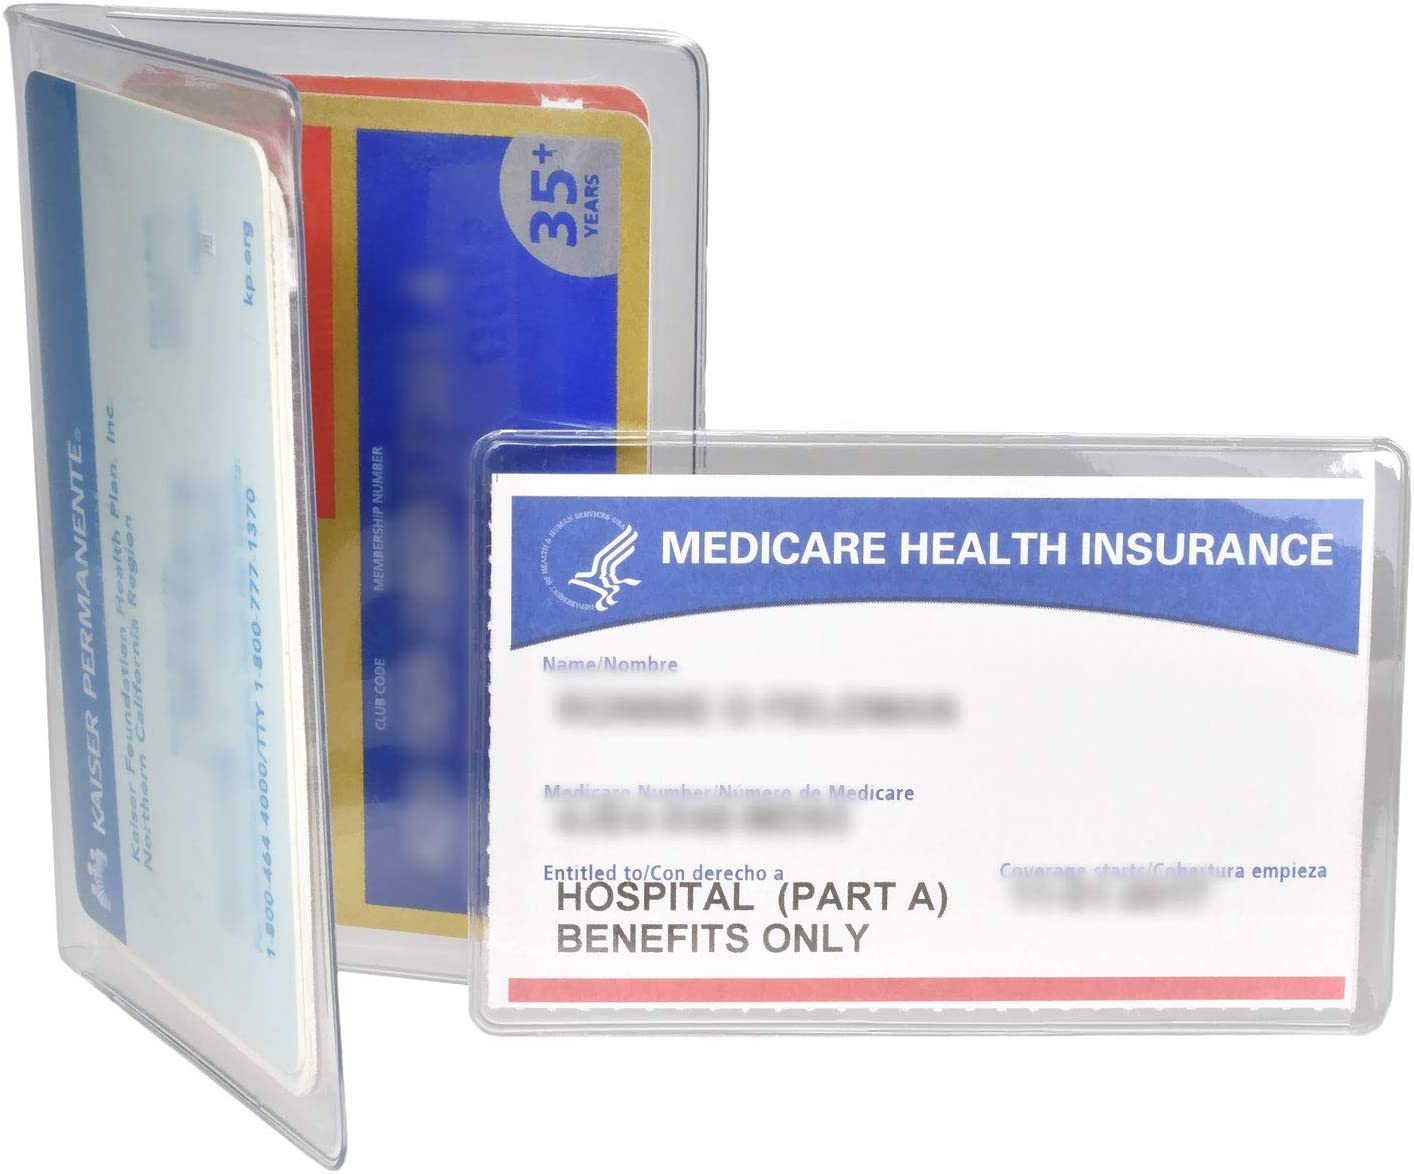 Medicare Regular dealer Combo 2 Wallets for Business Ho Credit with 3 Houston Mall and Cards